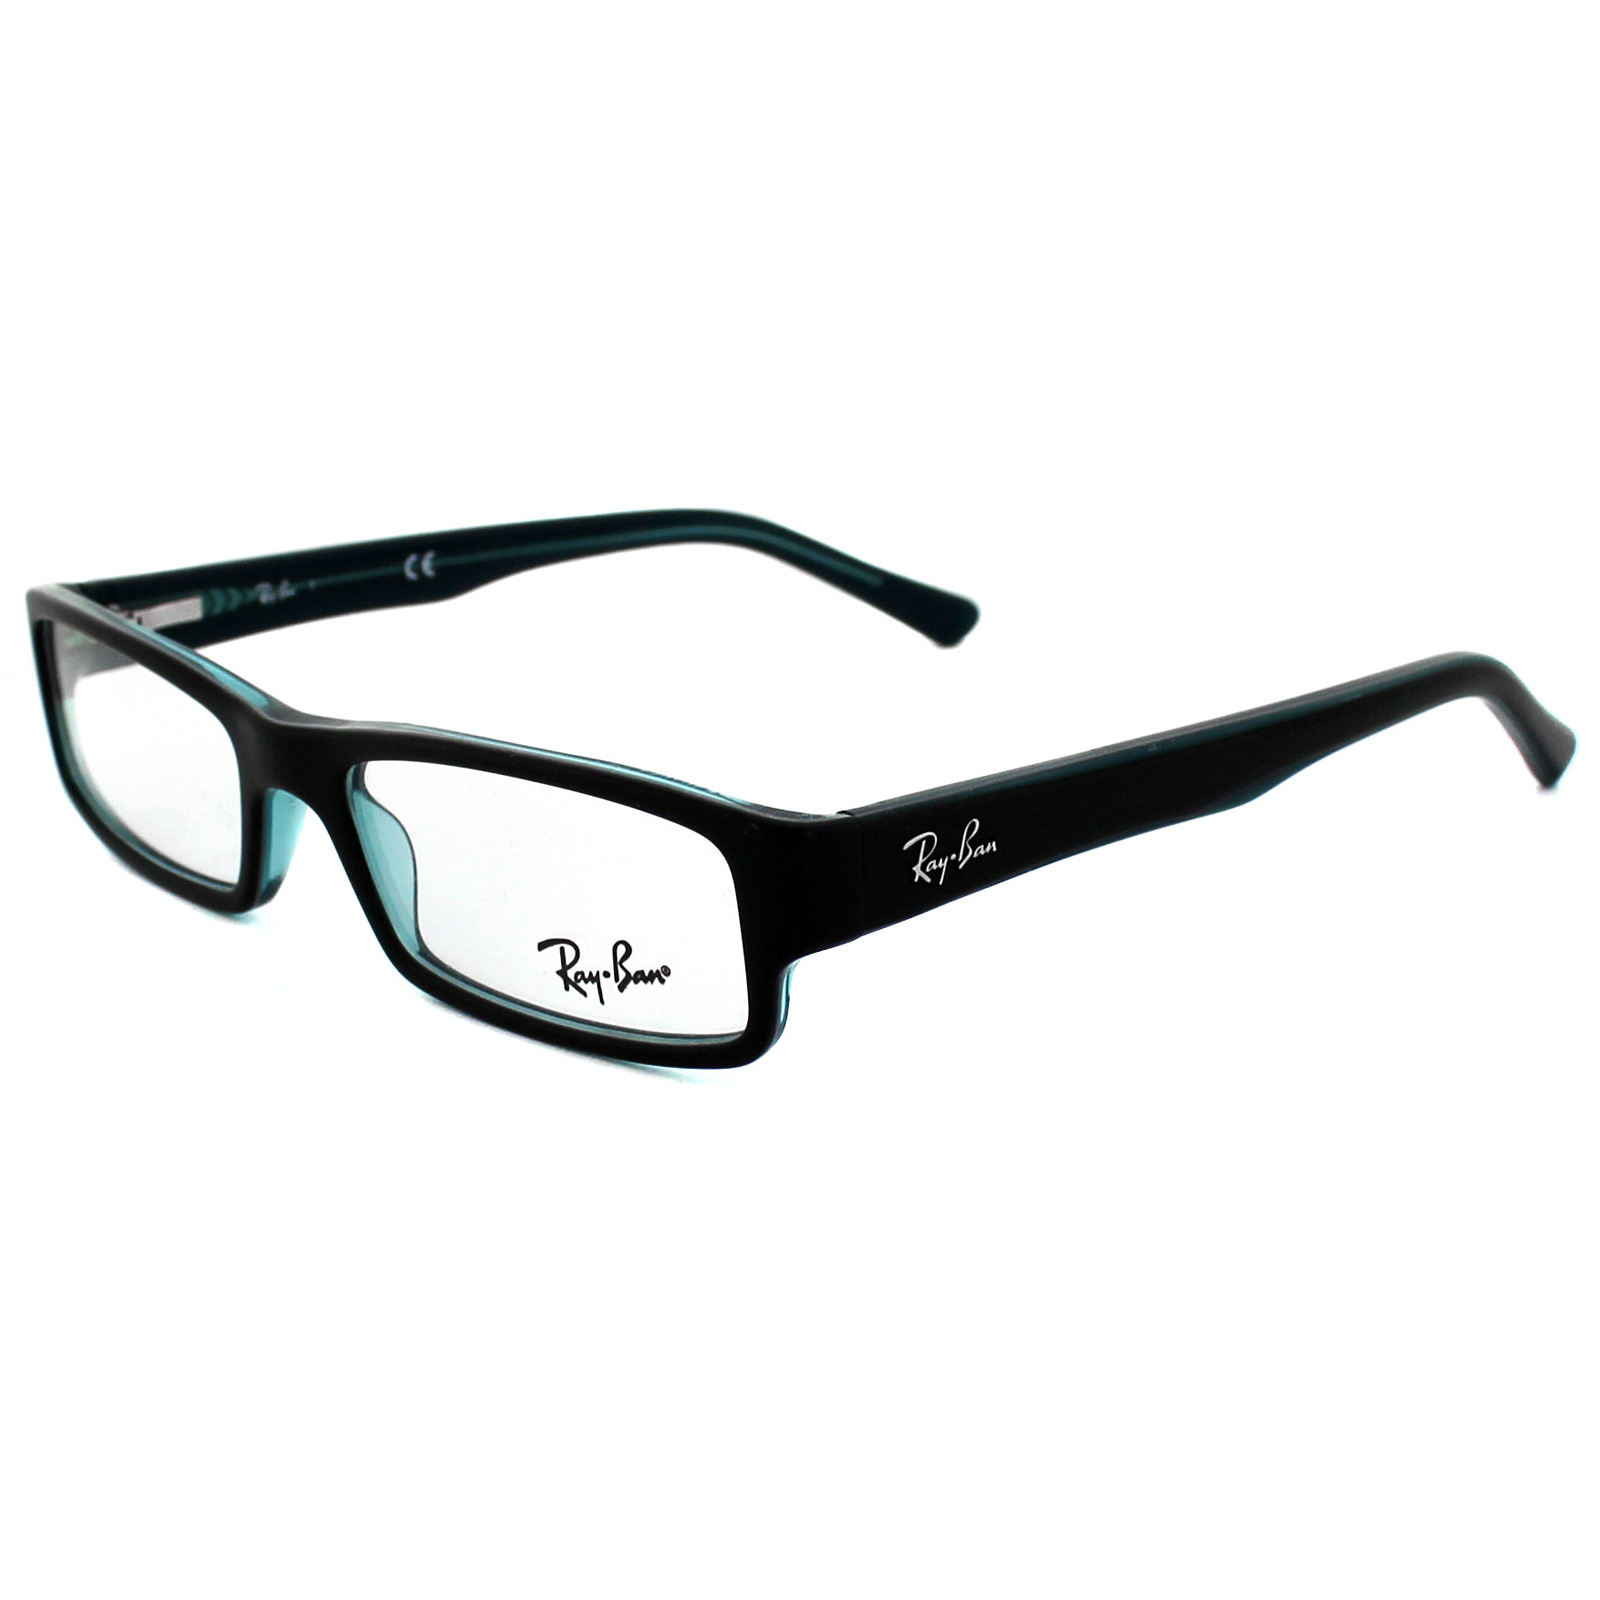 Ray Ban Glasses Large Frame : Ray-Ban Glasses Frames 5246 5092 Black Grey Turquoise